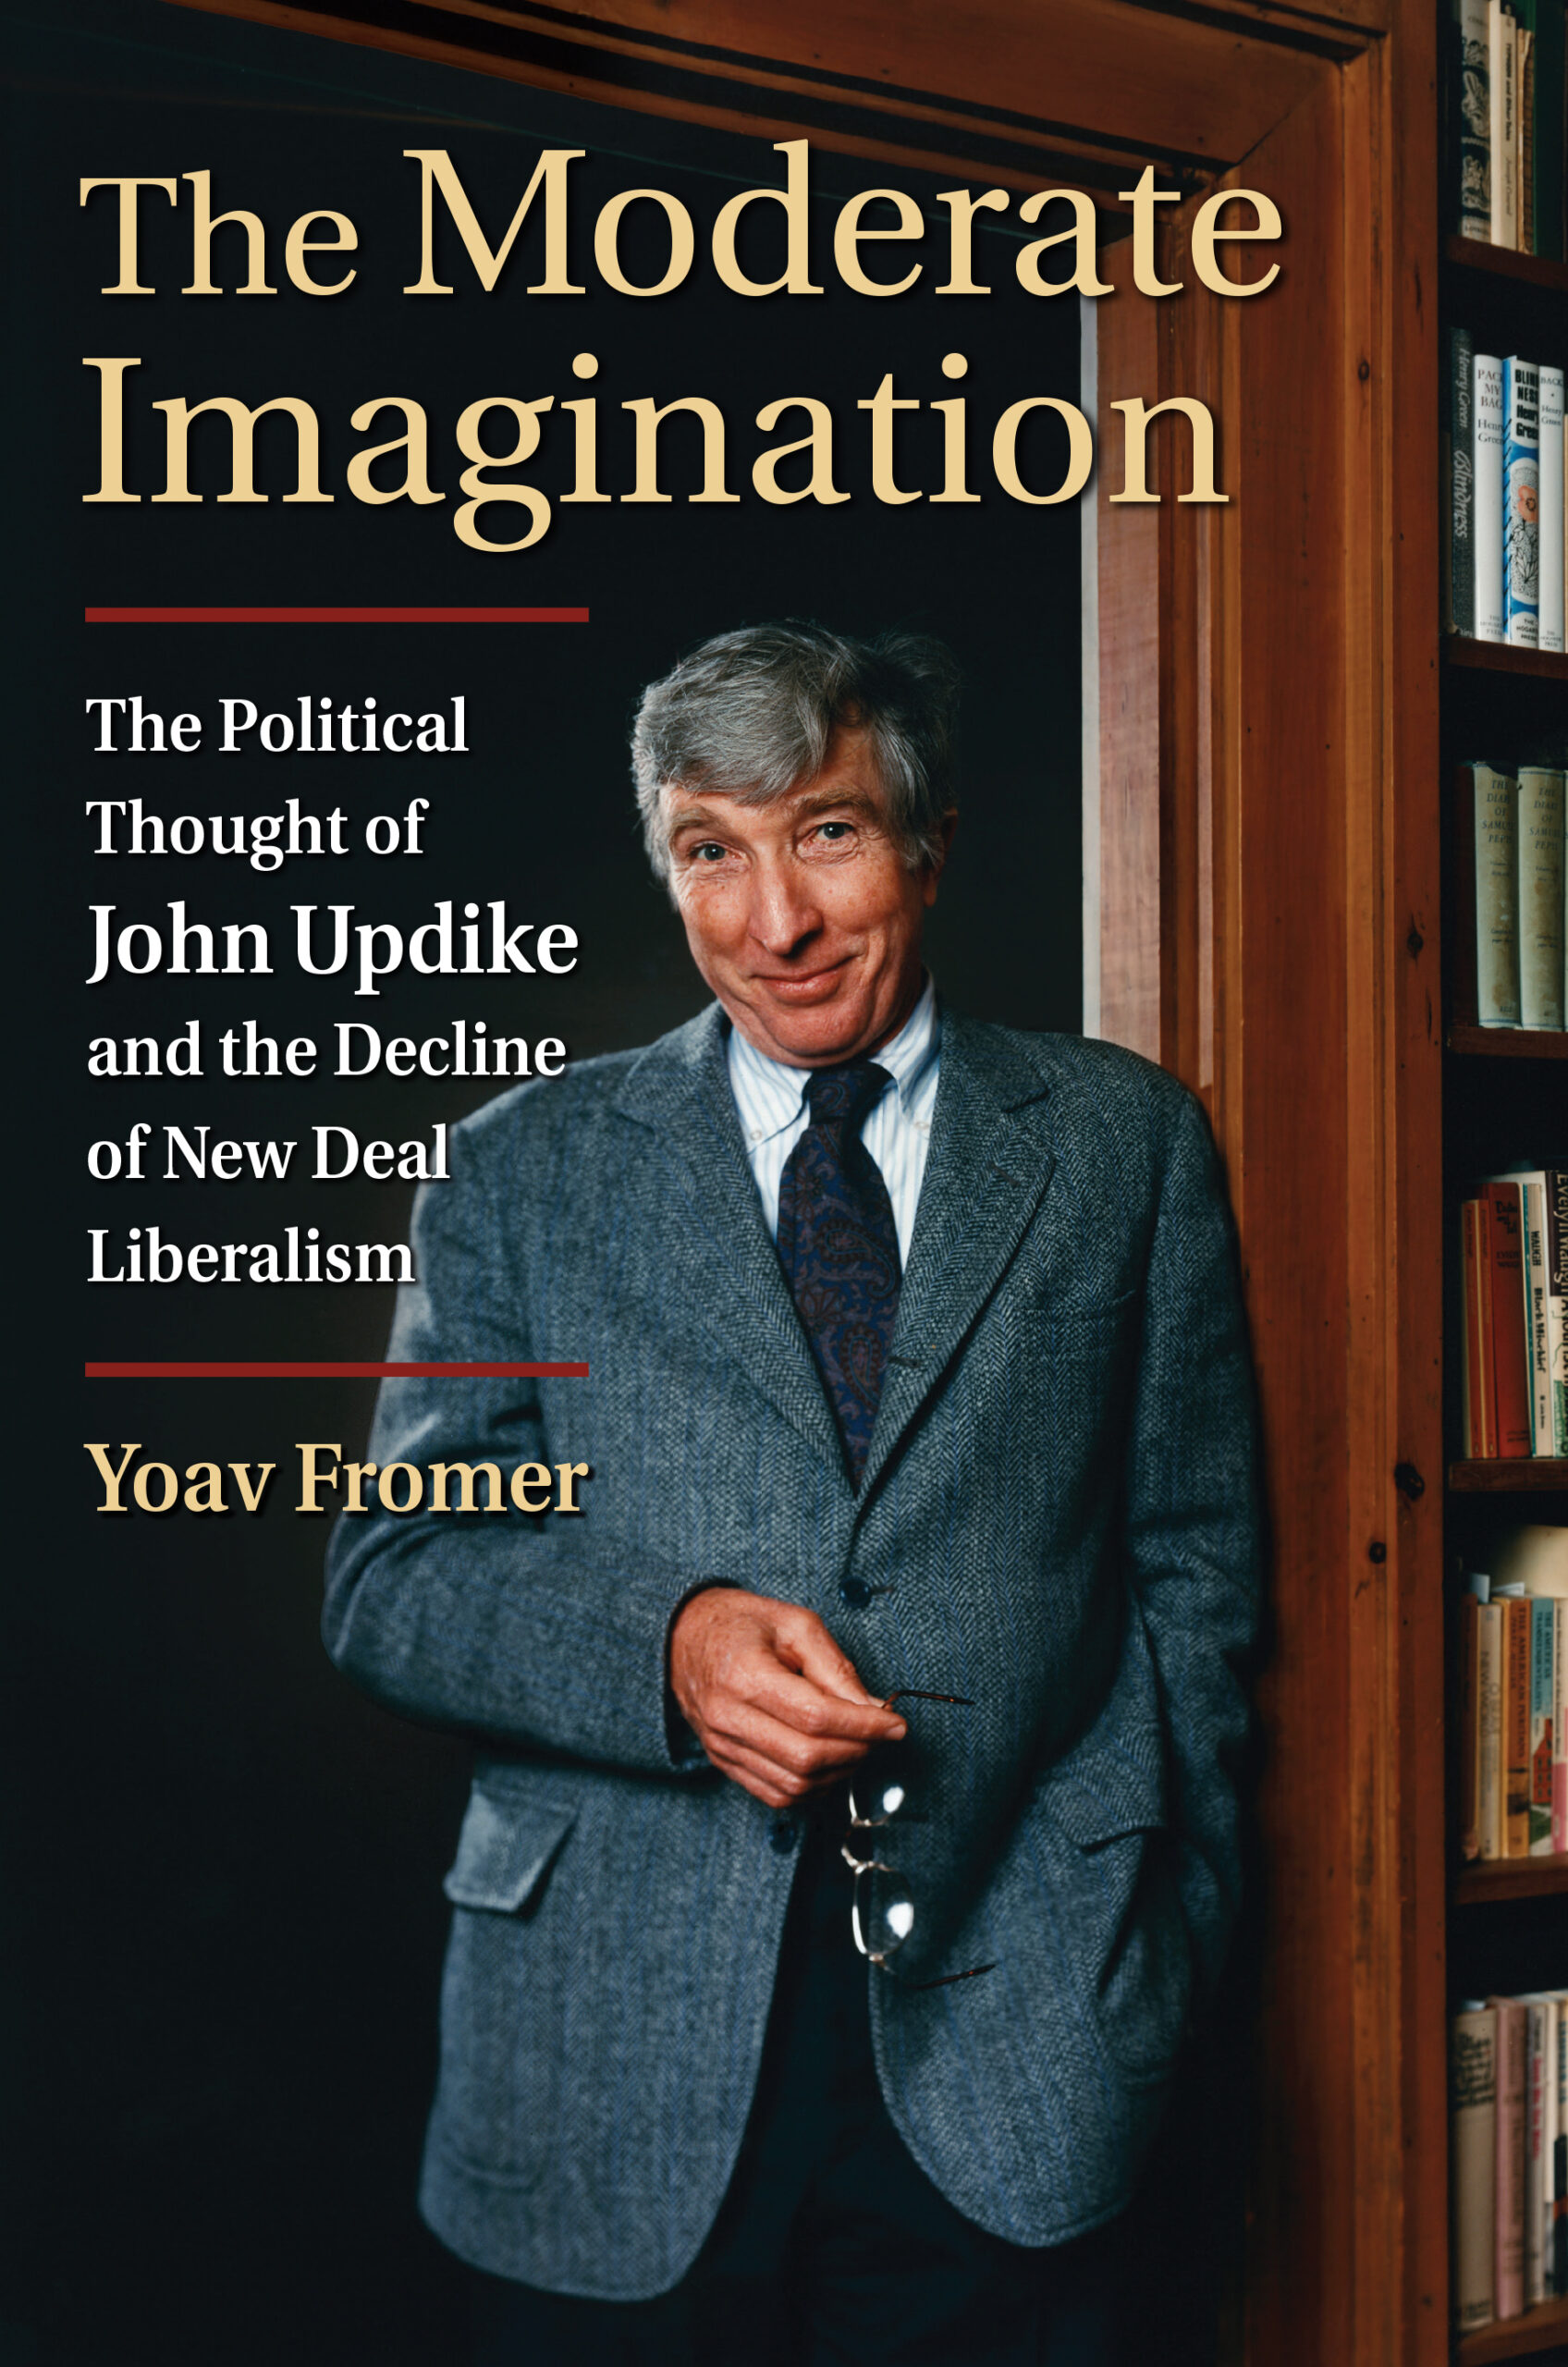 The Moderate Imagination: The Political Thought of John Updike and the Decline of New Deal Liberalism by Yoav Fromer